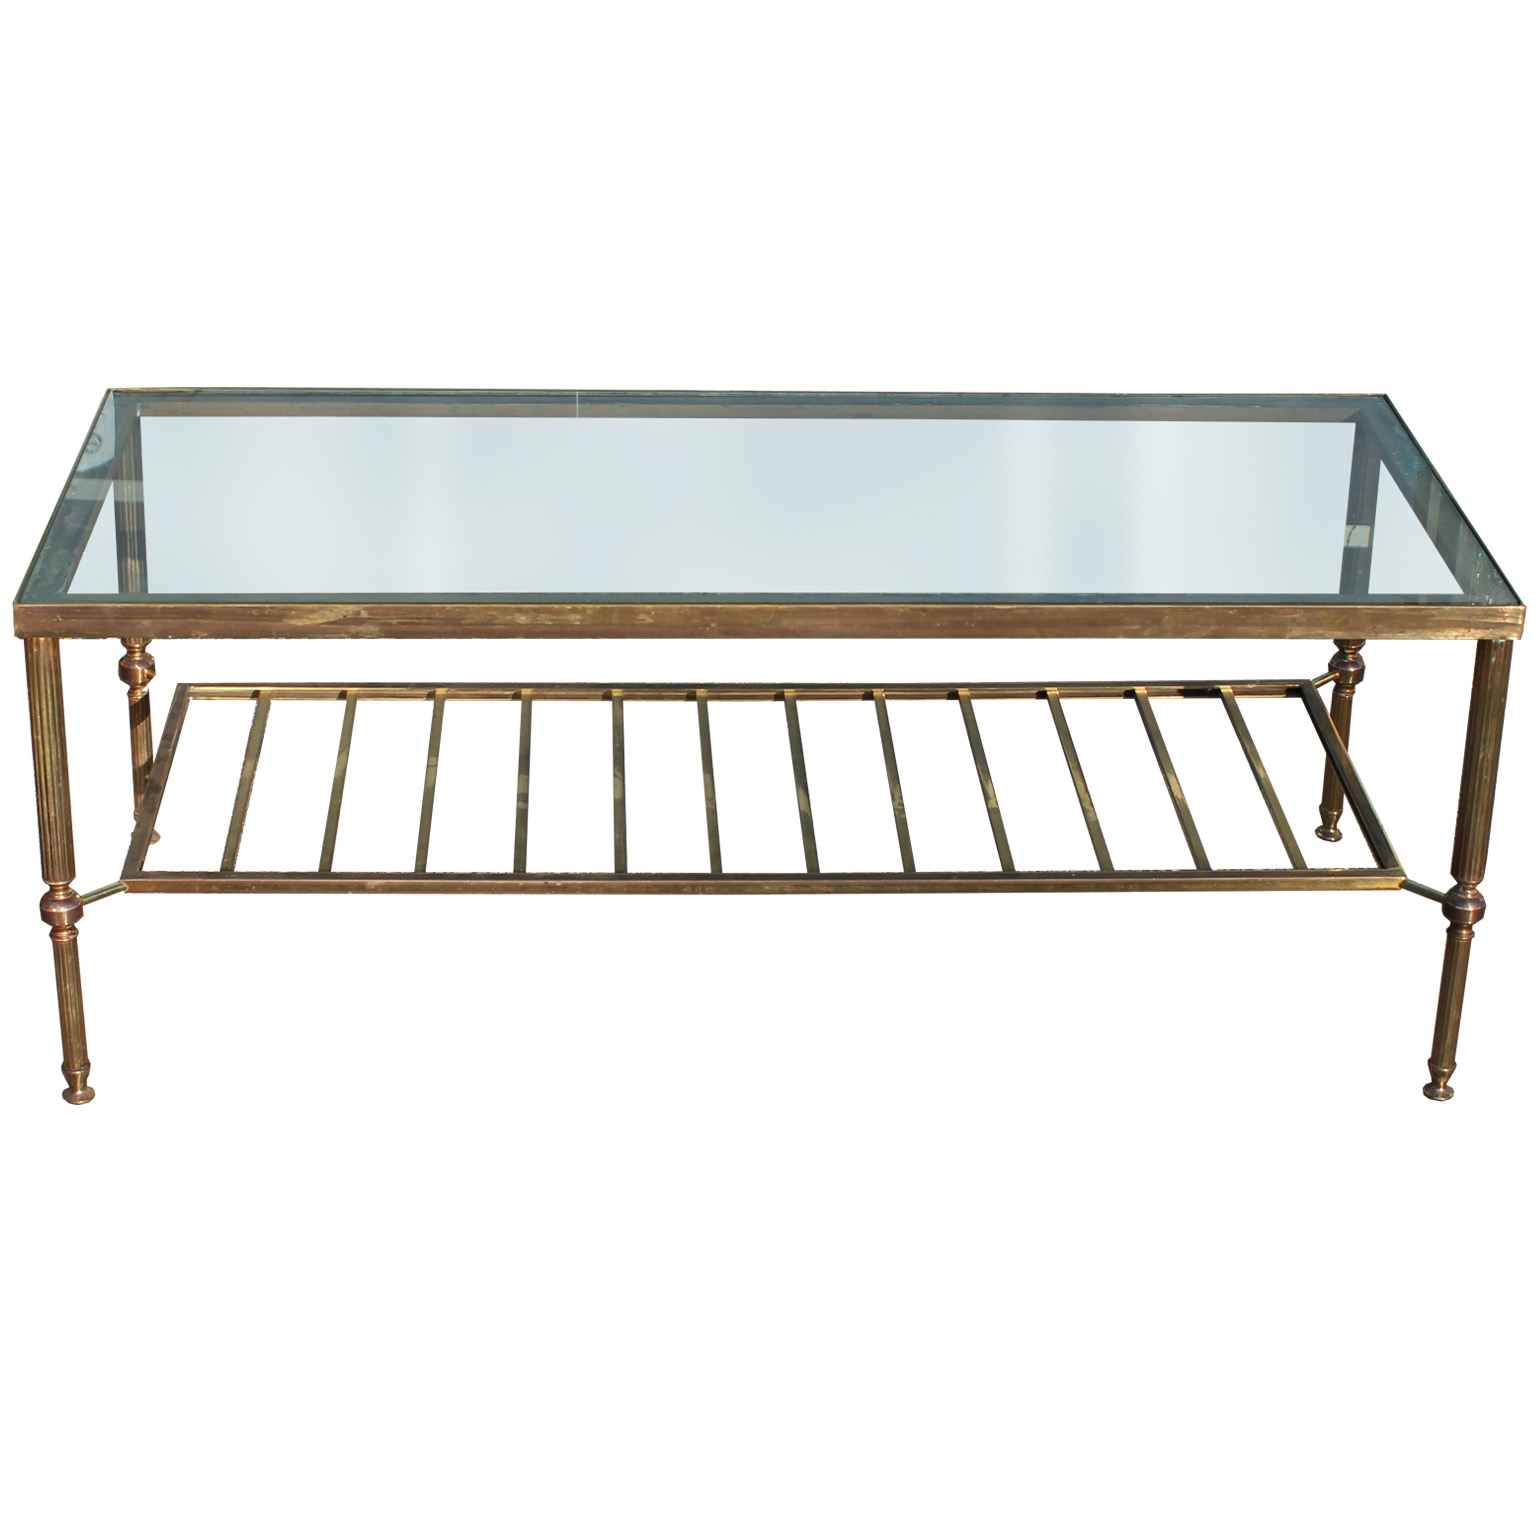 Elegant Brass And Glass Coffee Table